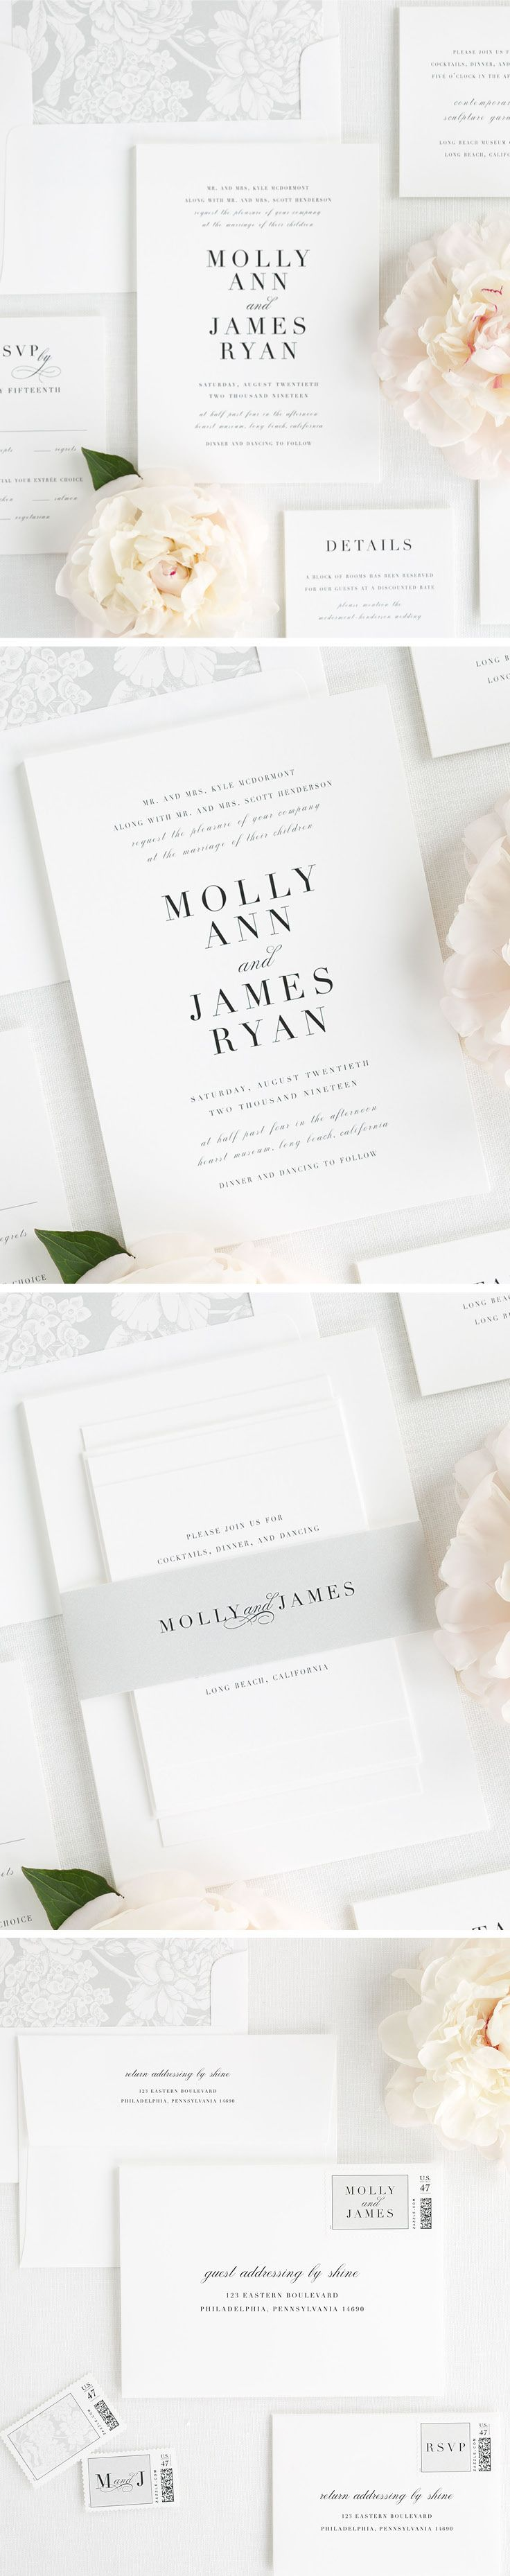 Let your wedding day shine with our 2017 collection design, Serif Romance. This simple and classic wedding invitation mixes a romantic serif font and soft script to make a big statement. This wedding invitation suite features a pretty gray floral envelope liner and is perfectly wrapped up with a belly band in silver gray. Personalize you perfect wedding invitation with Shine!